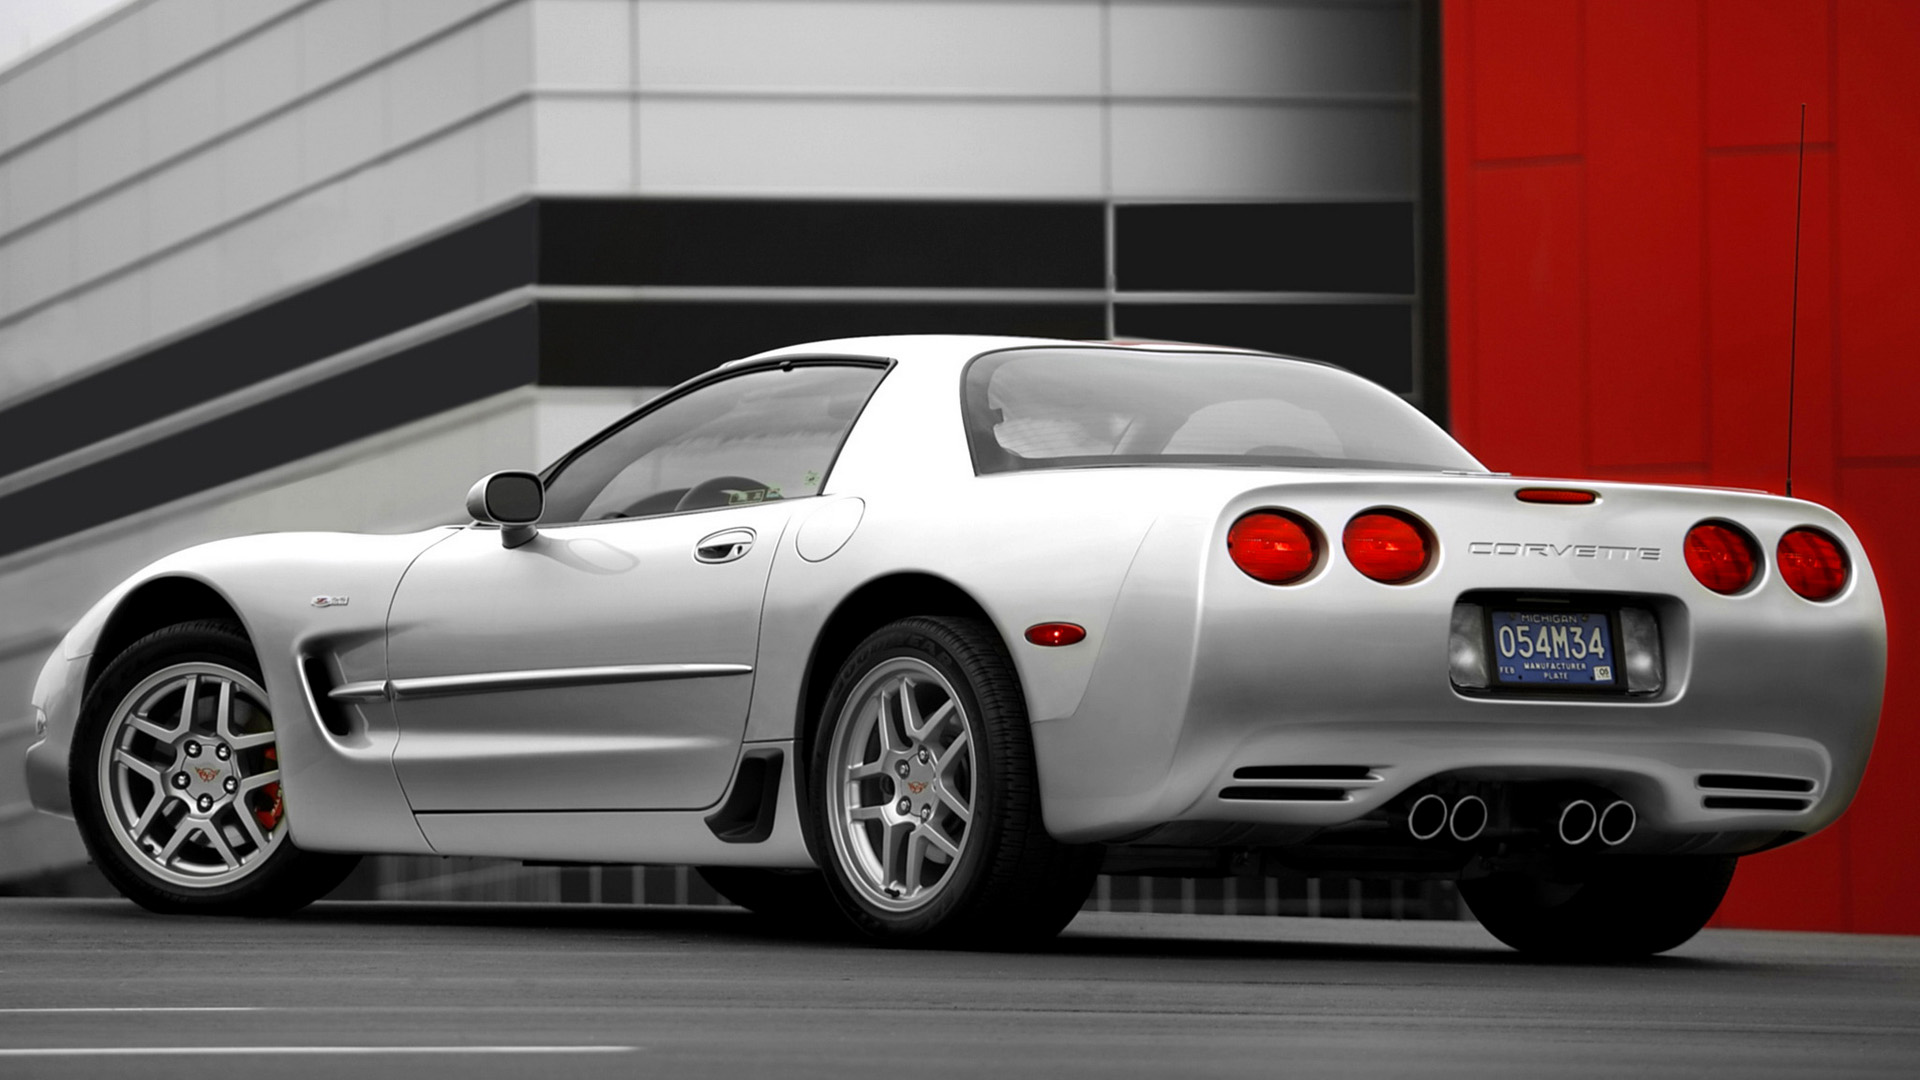 2001 Corvette Wallpapers